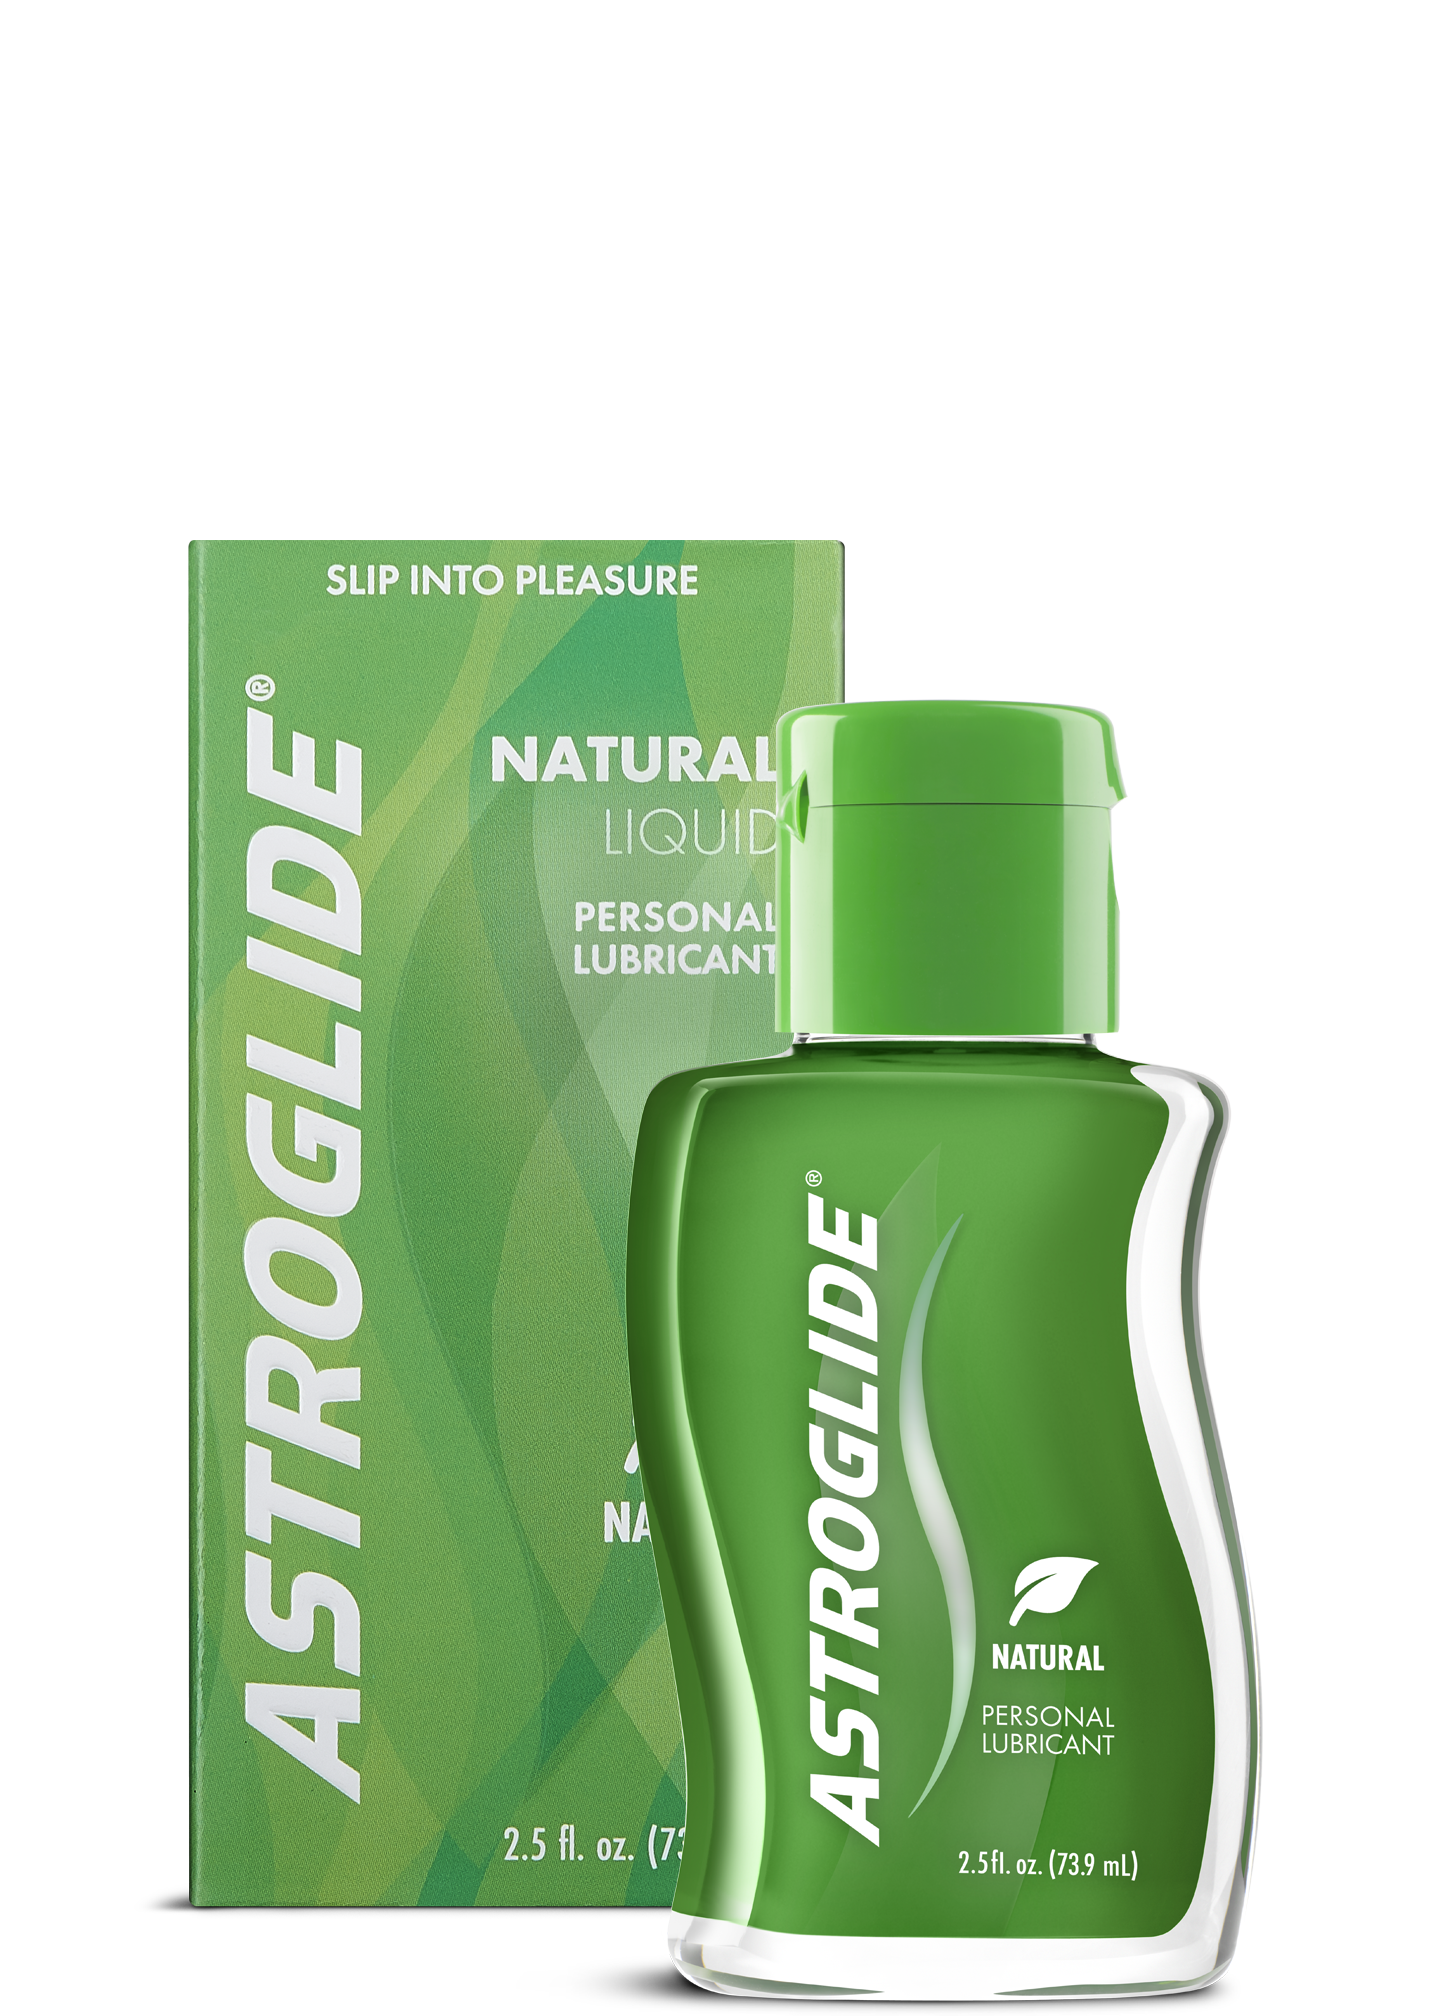 Astroglide<br/><span>Natural Liquid</span> image